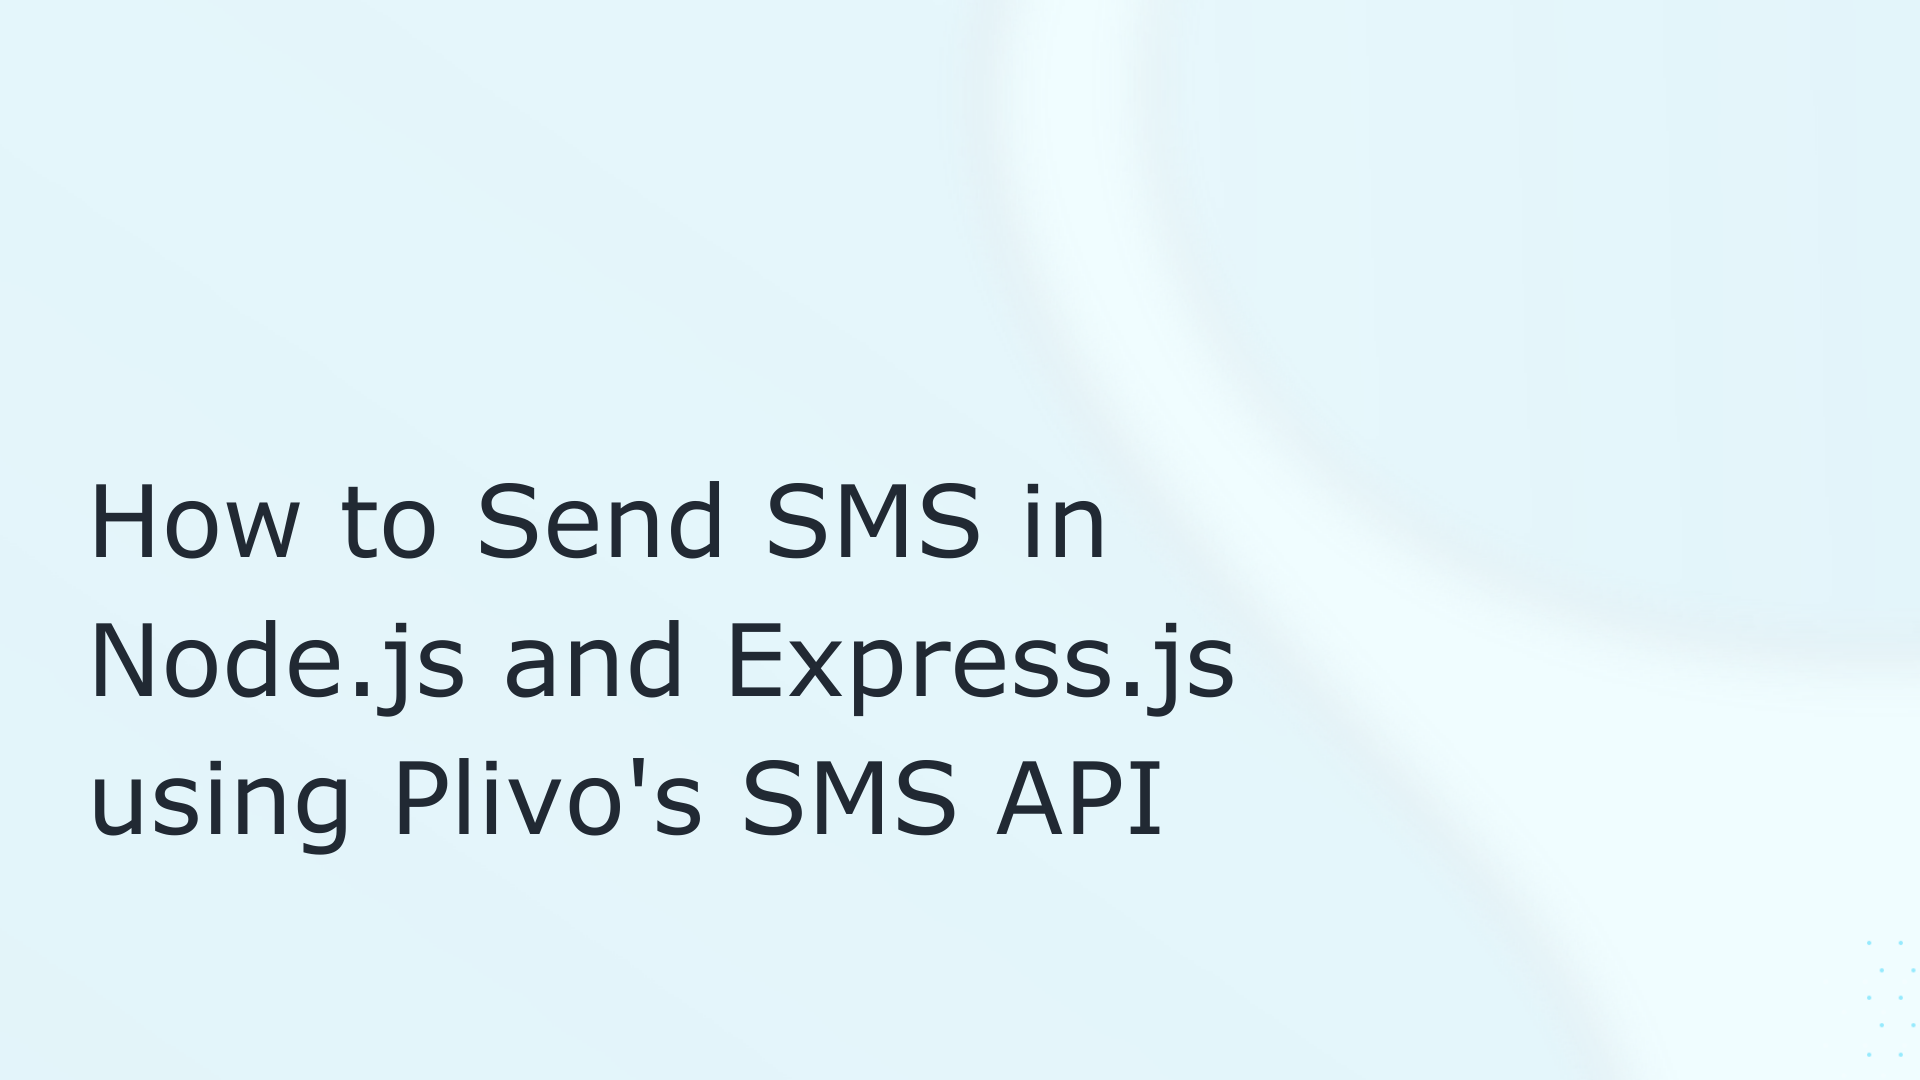 How to Send SMS in Node.js and Express.js Using Plivo's SMS API